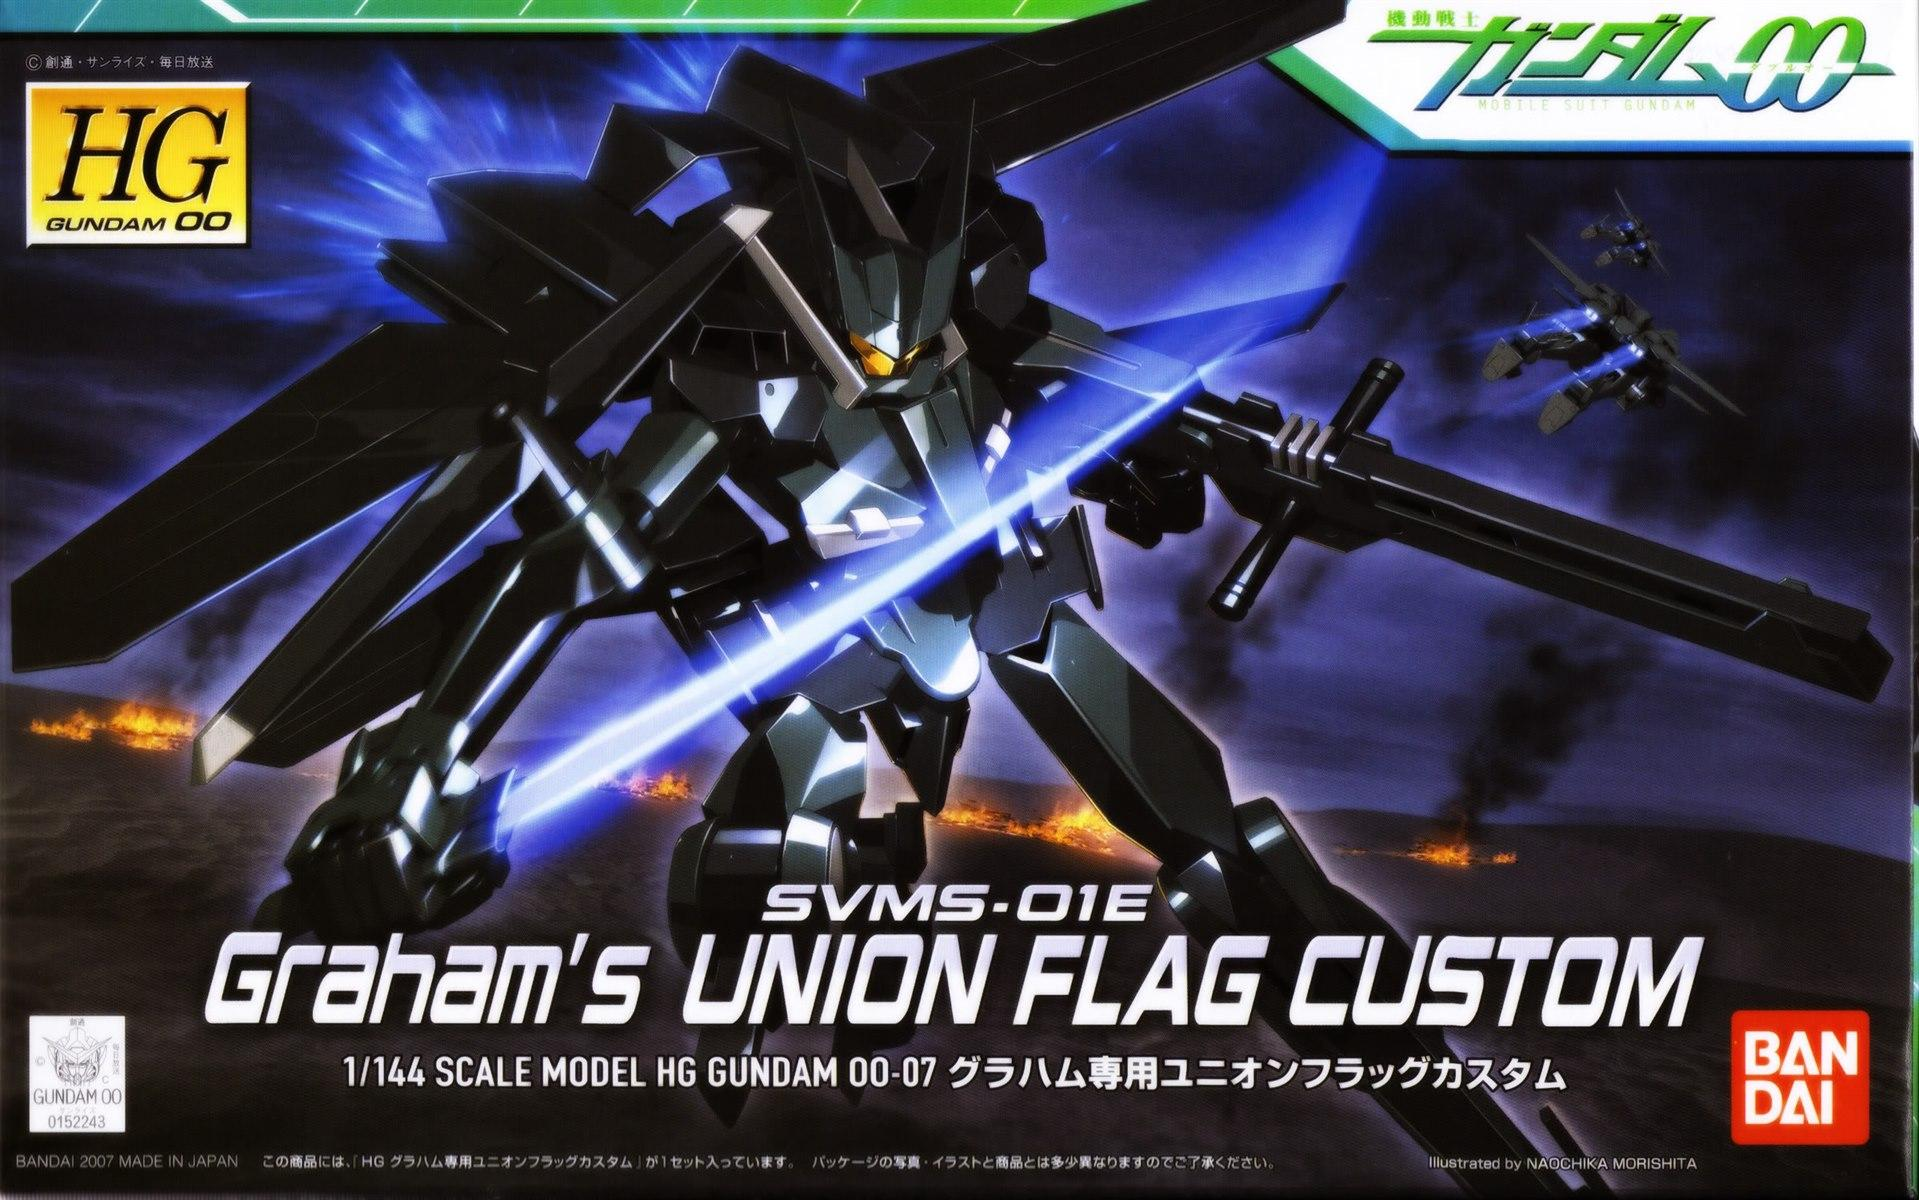 [07] SVMS-01E Graham`s Union Flag Custom (HG)